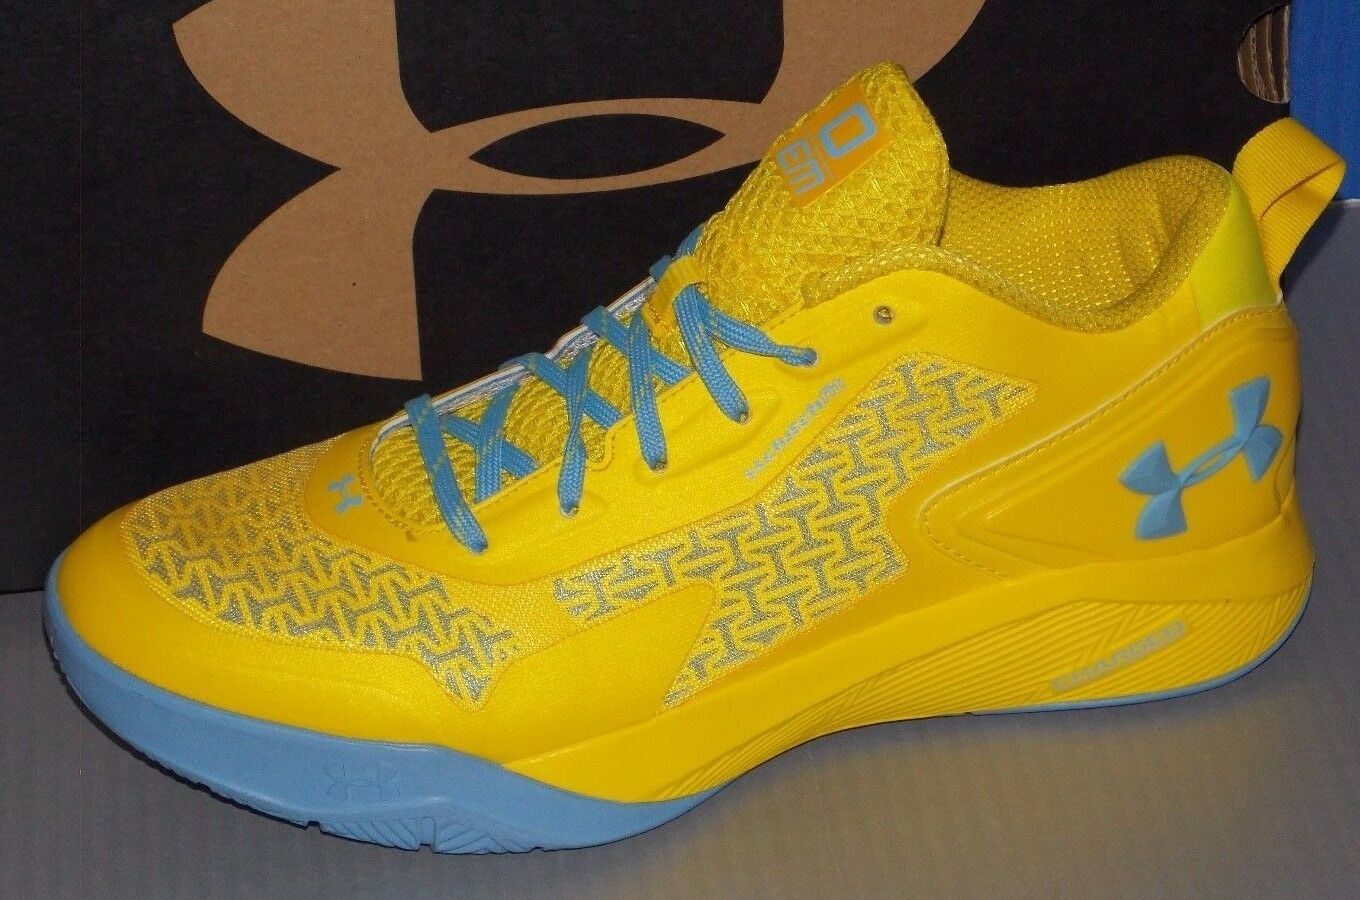 MENS UNDER ARMOUR CLUTCHFIT DRIVE 2 LOW TAXI YELLOW / TAXI YELLOW / CBL SZ 11.5